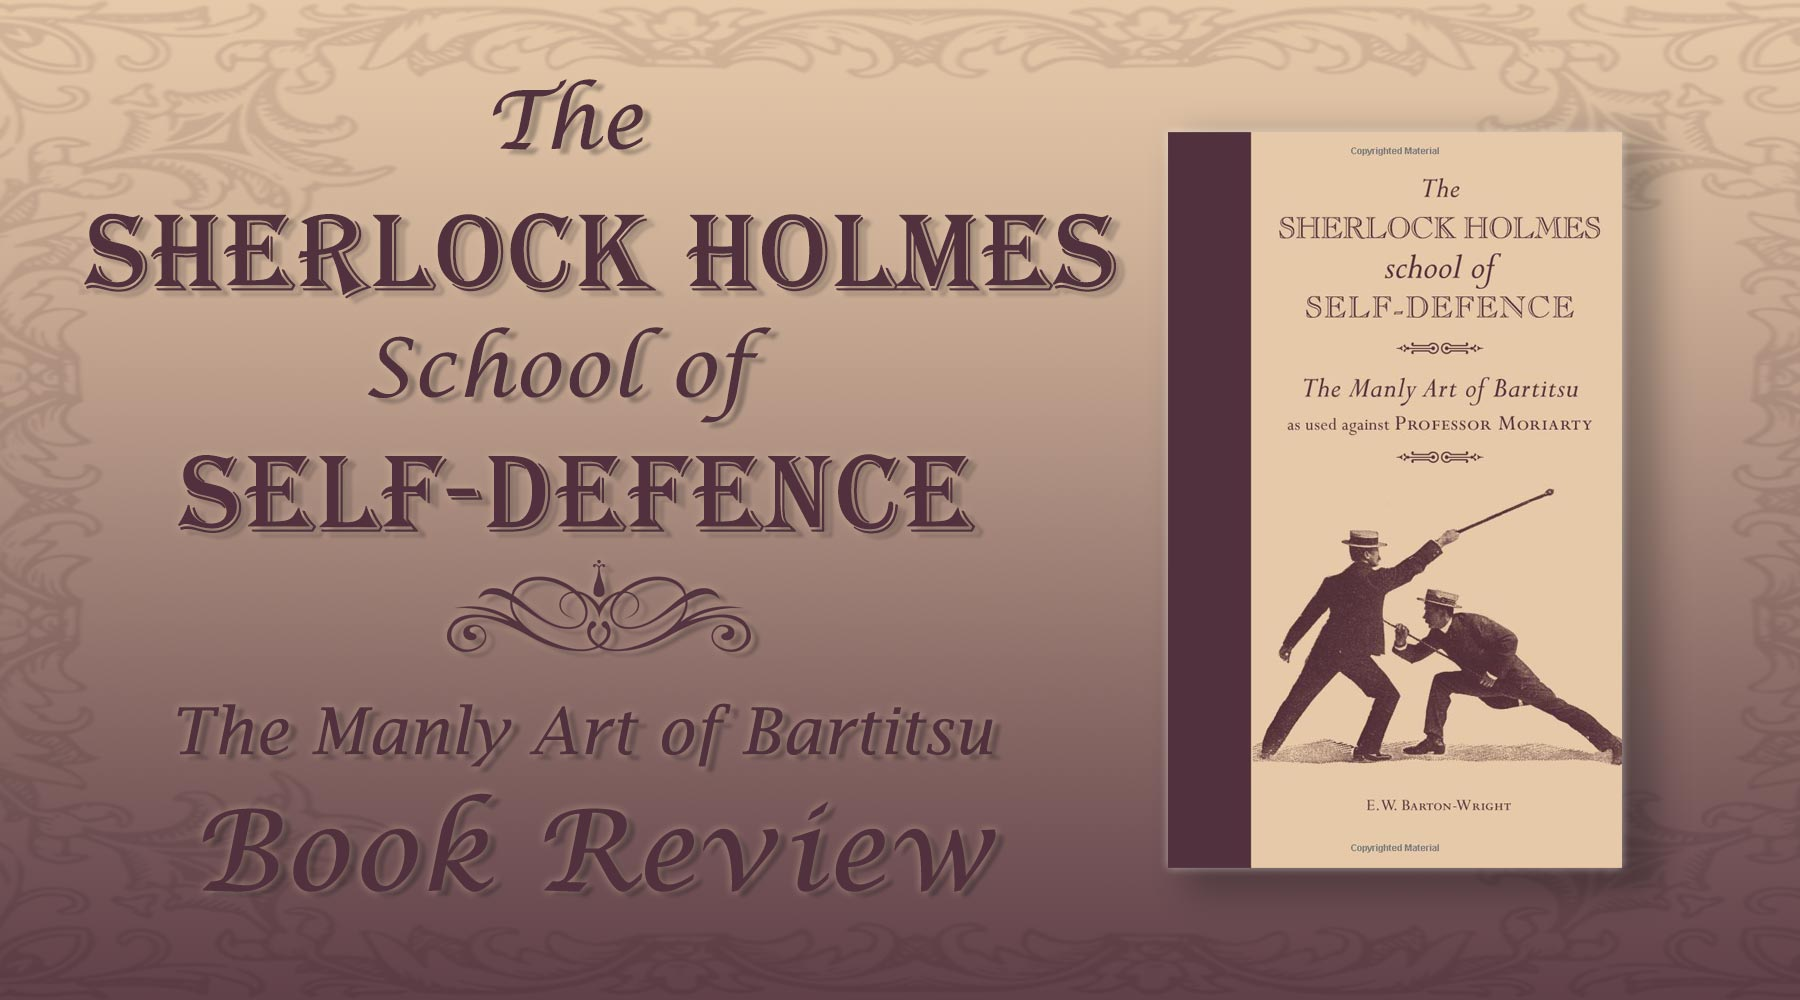 The Sherlock Holmes School of Self-Defence Book Review